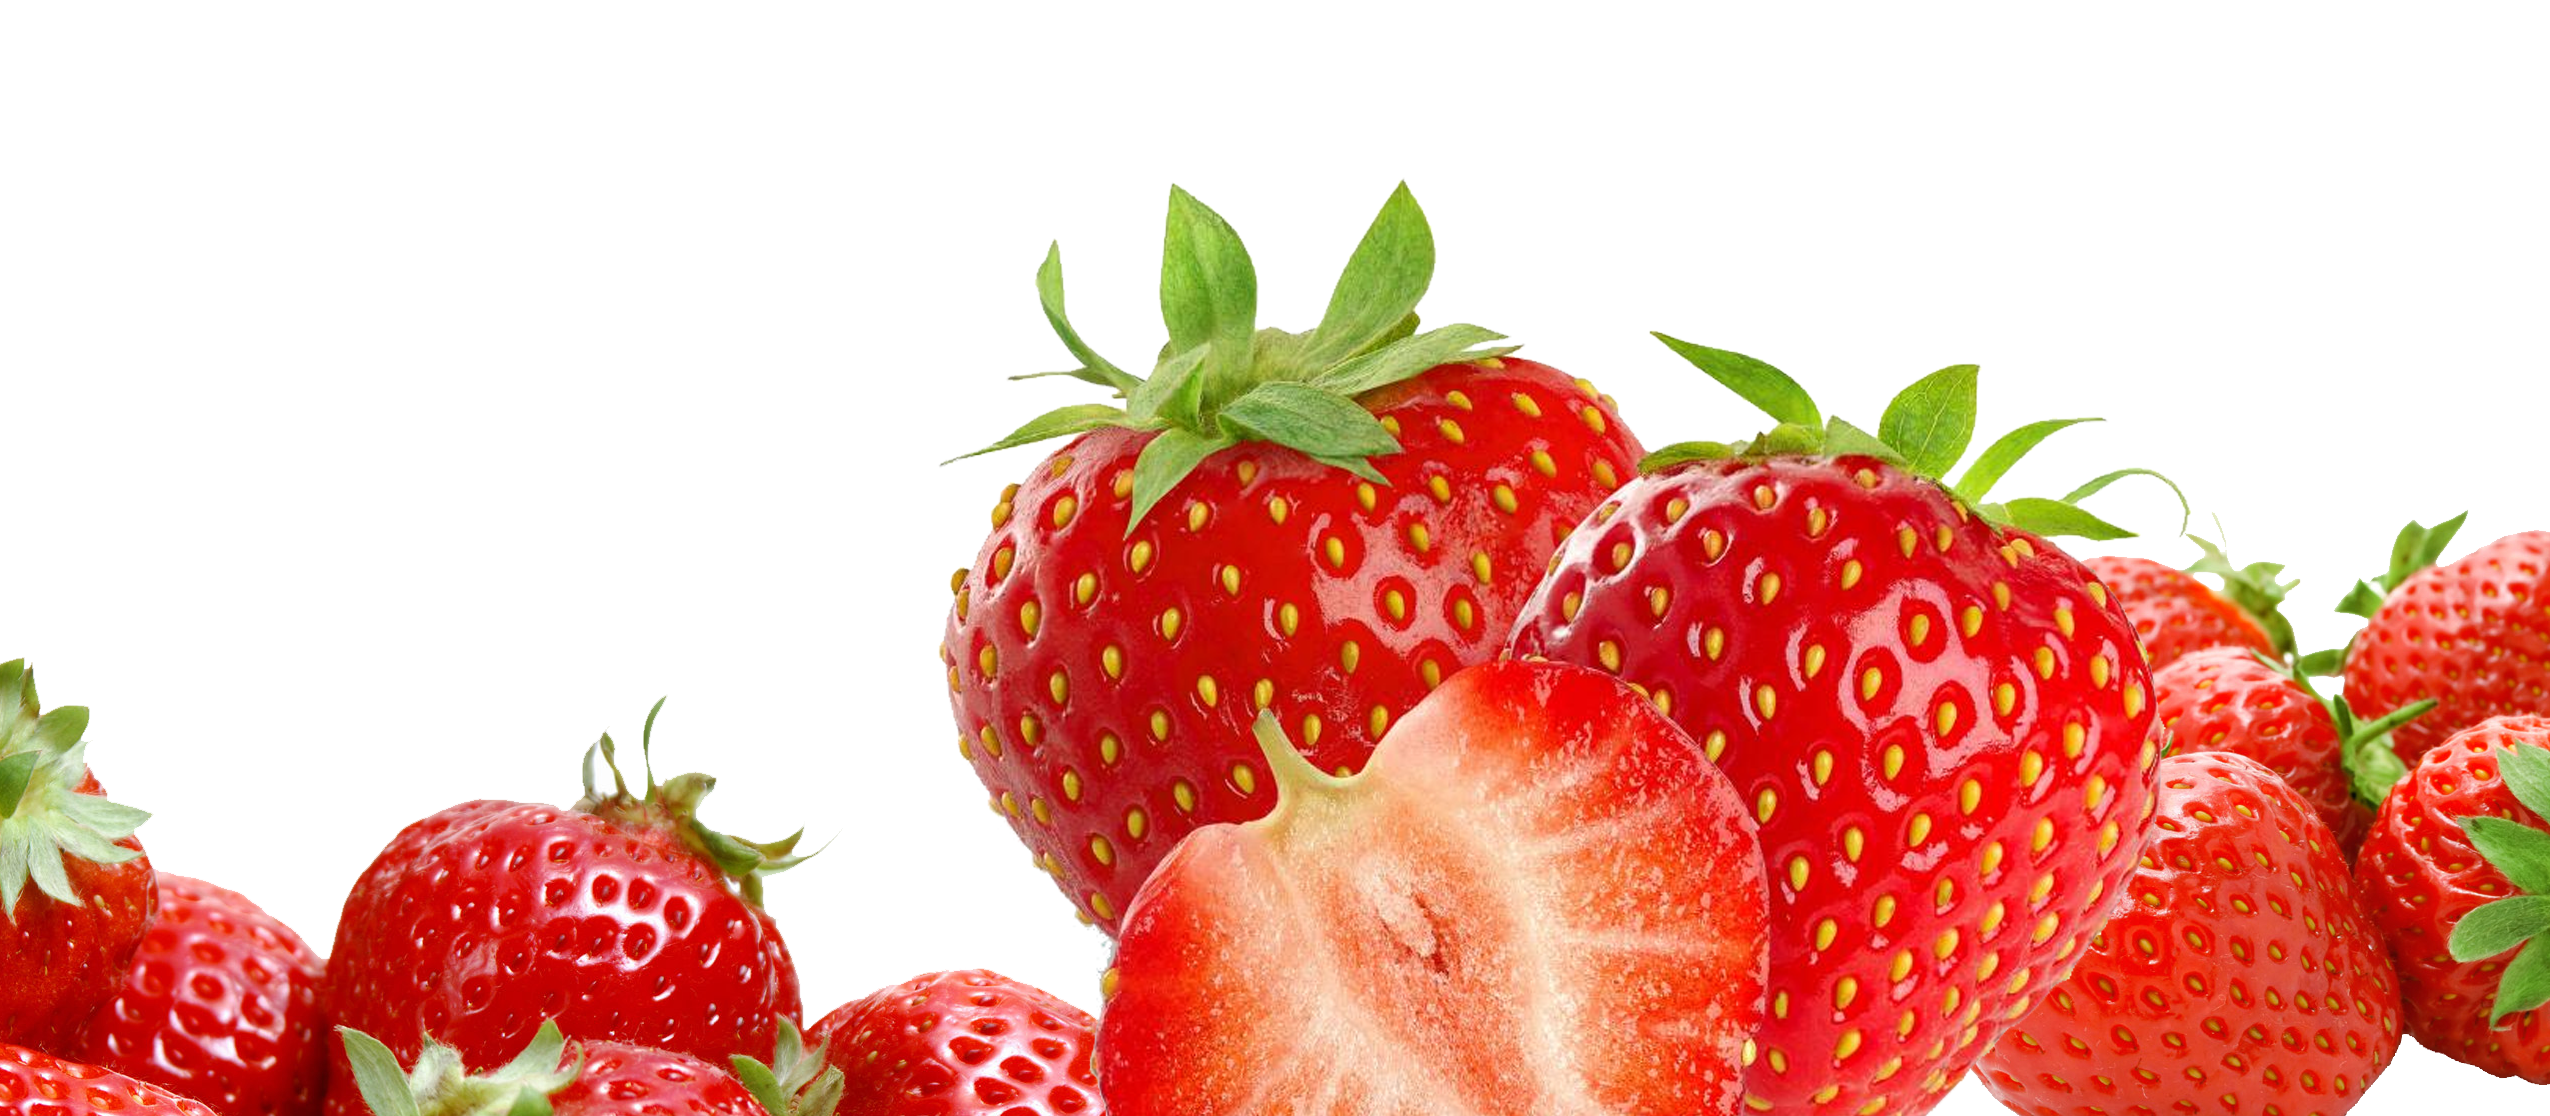 Strawberry PNG - 21052